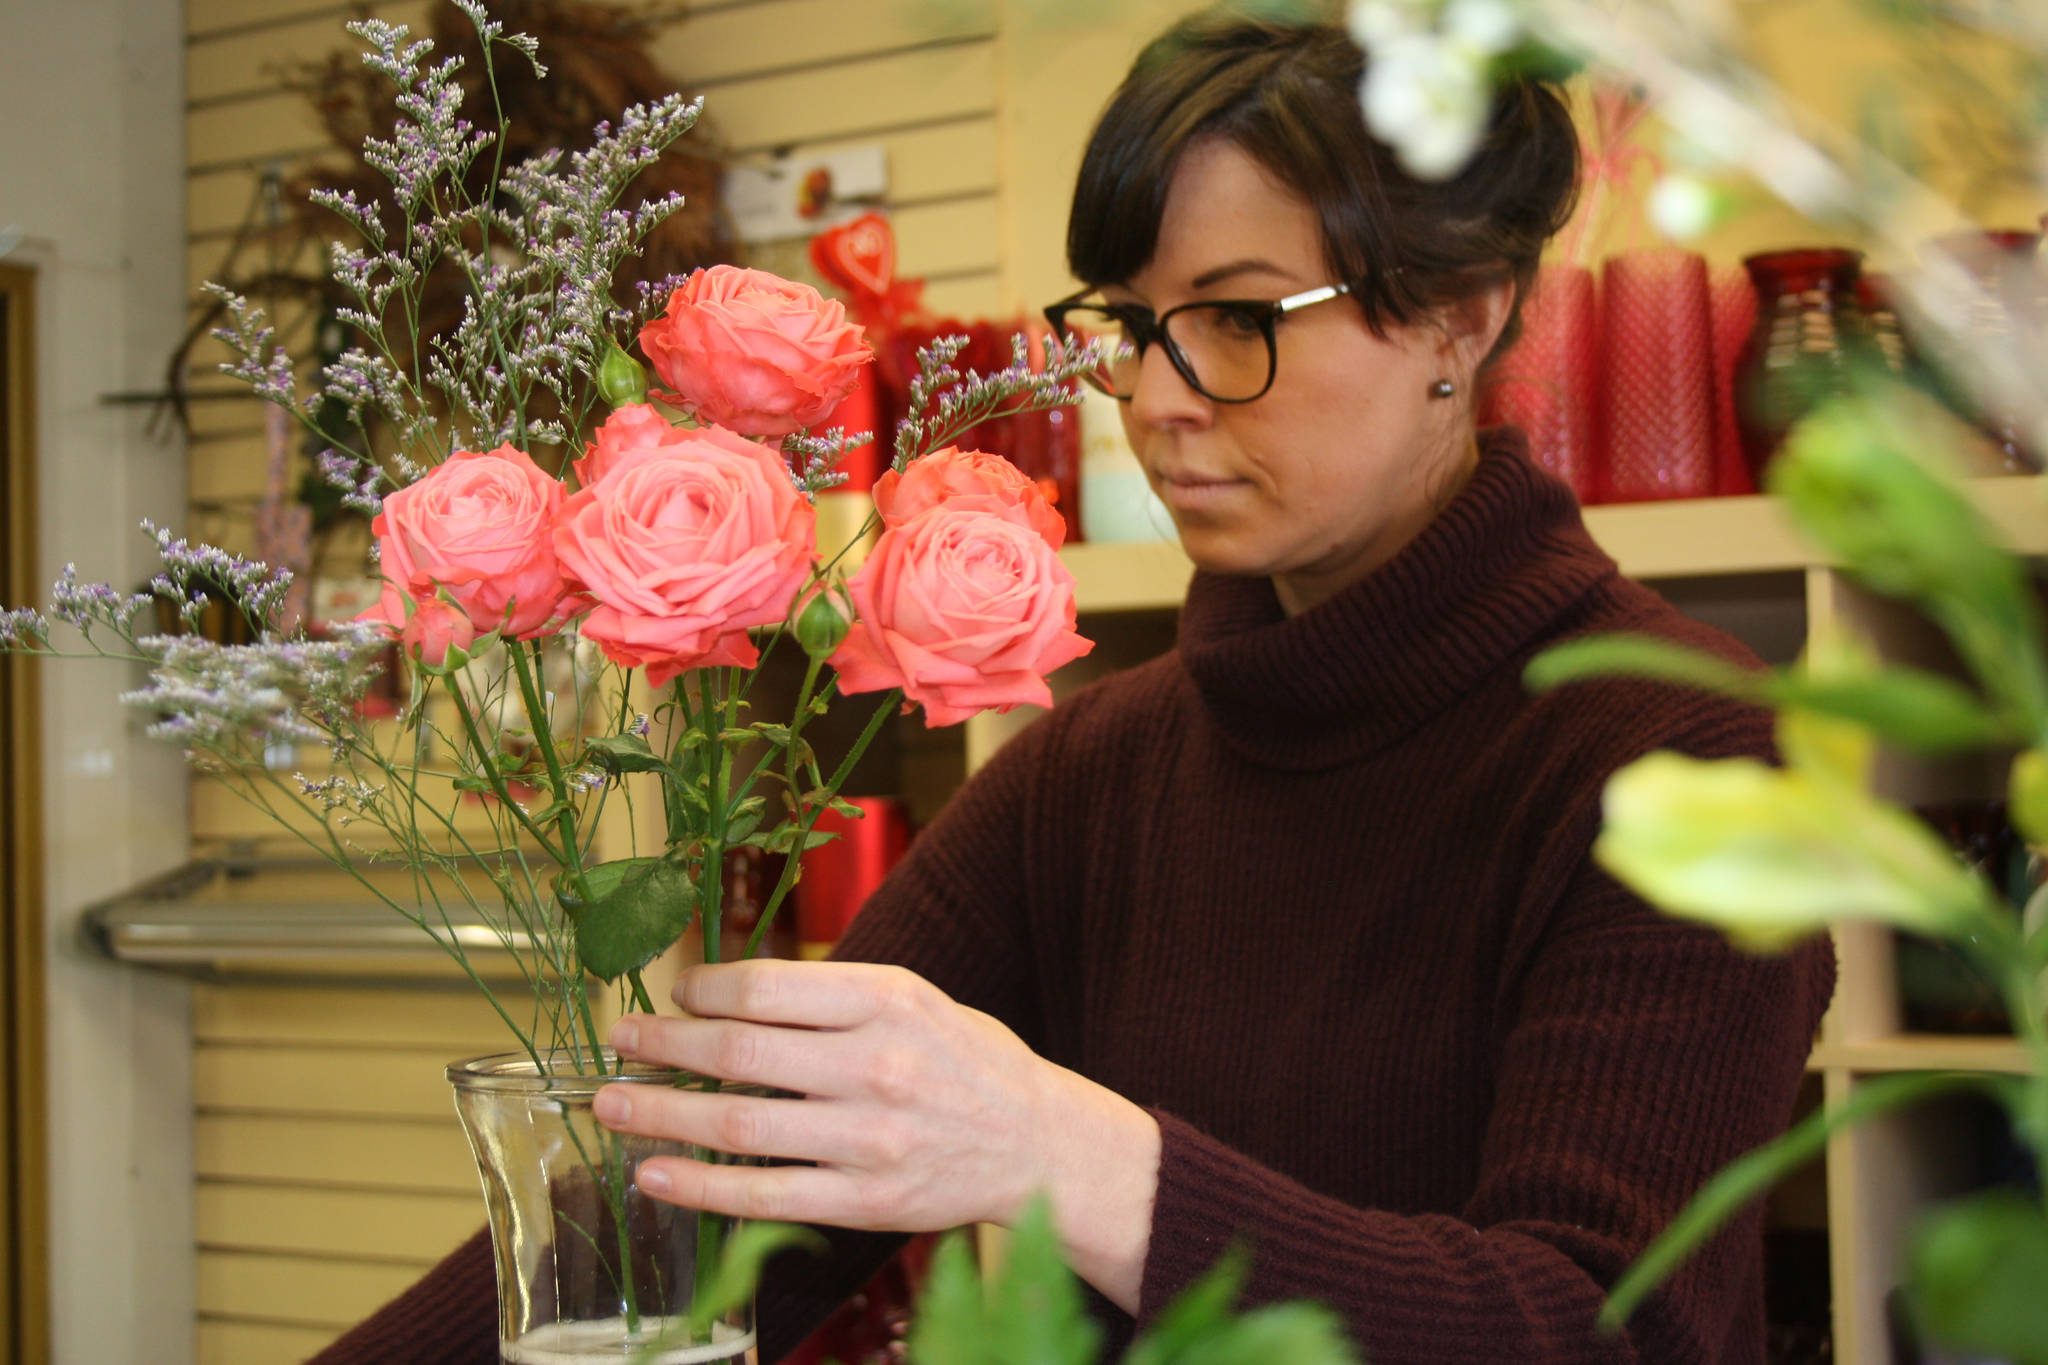 Ashley Beck returns to the Oak Bay Flower Shop twice a year, at Valentine's and Mother's days. On Feb. 13 and 14 there ends up being very little room to work at Oak Bay Flower Shop as customers, mostly men but of all demographics, flock to the shop. (Travis Paterson/News Staff)